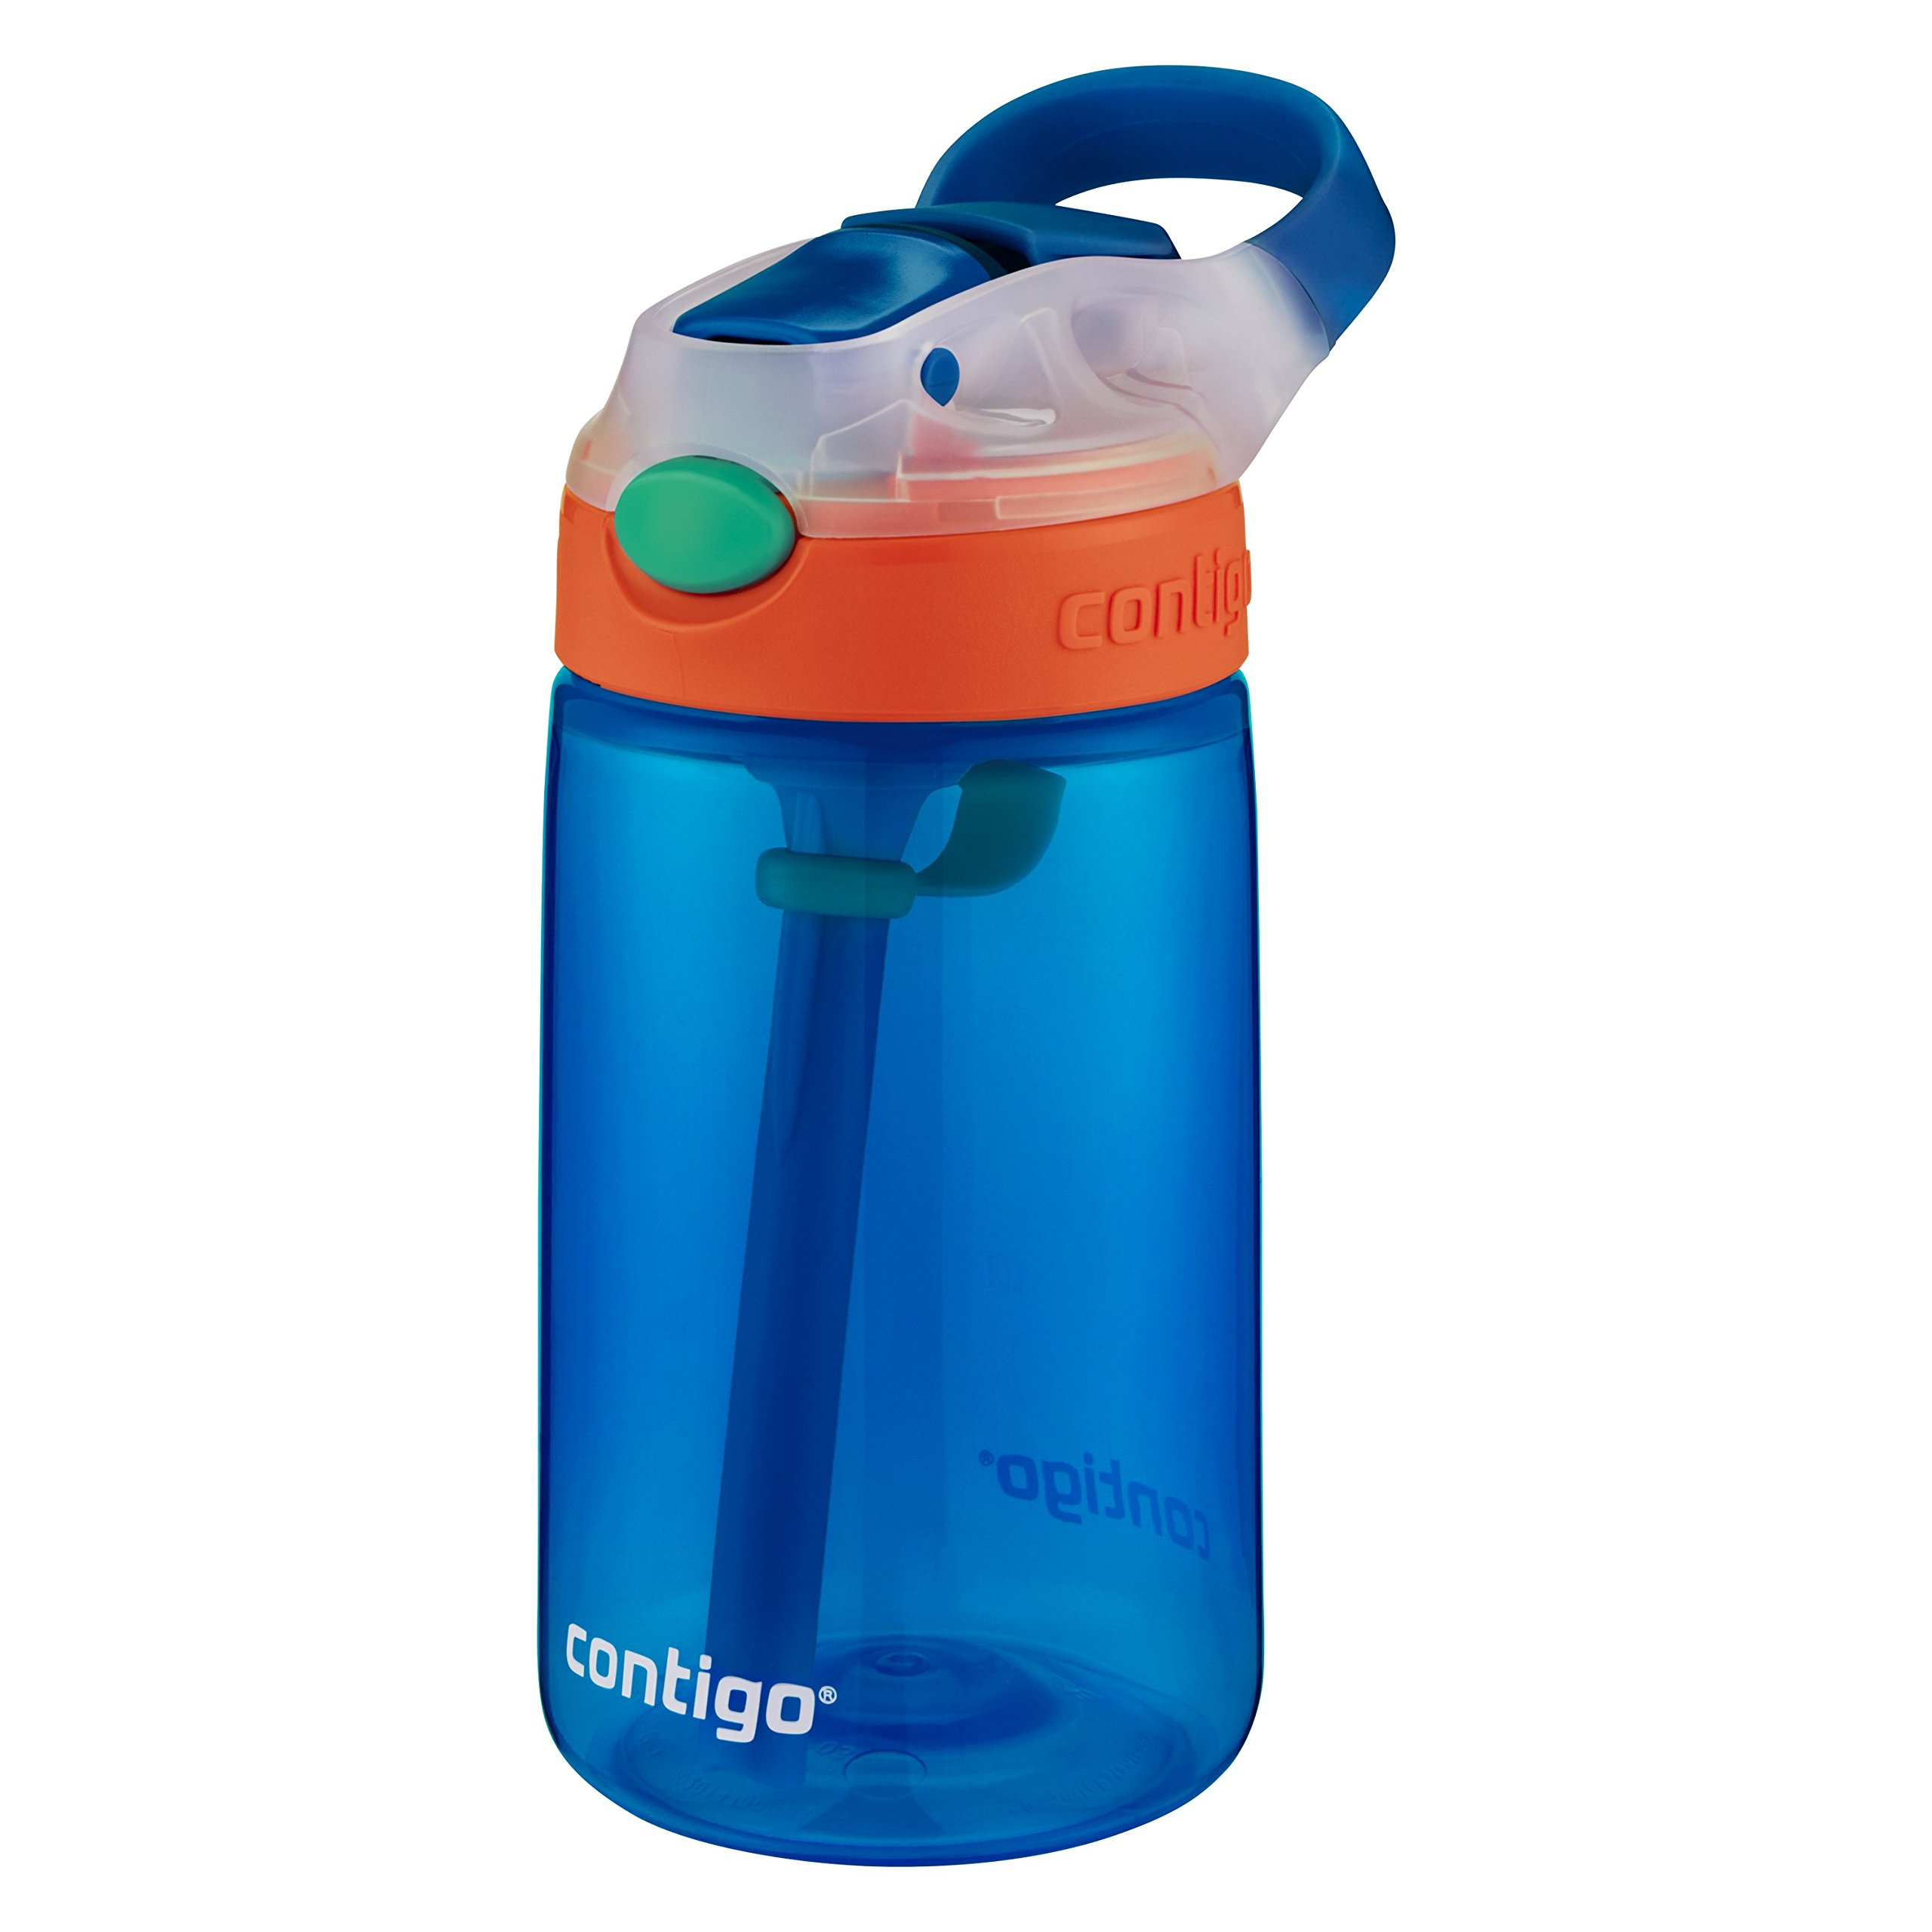 Contigo Kids Gizmo Flip Water Bottles, 14oz, French Blue/Coral, 2-Pack by Contigo (Image #3)